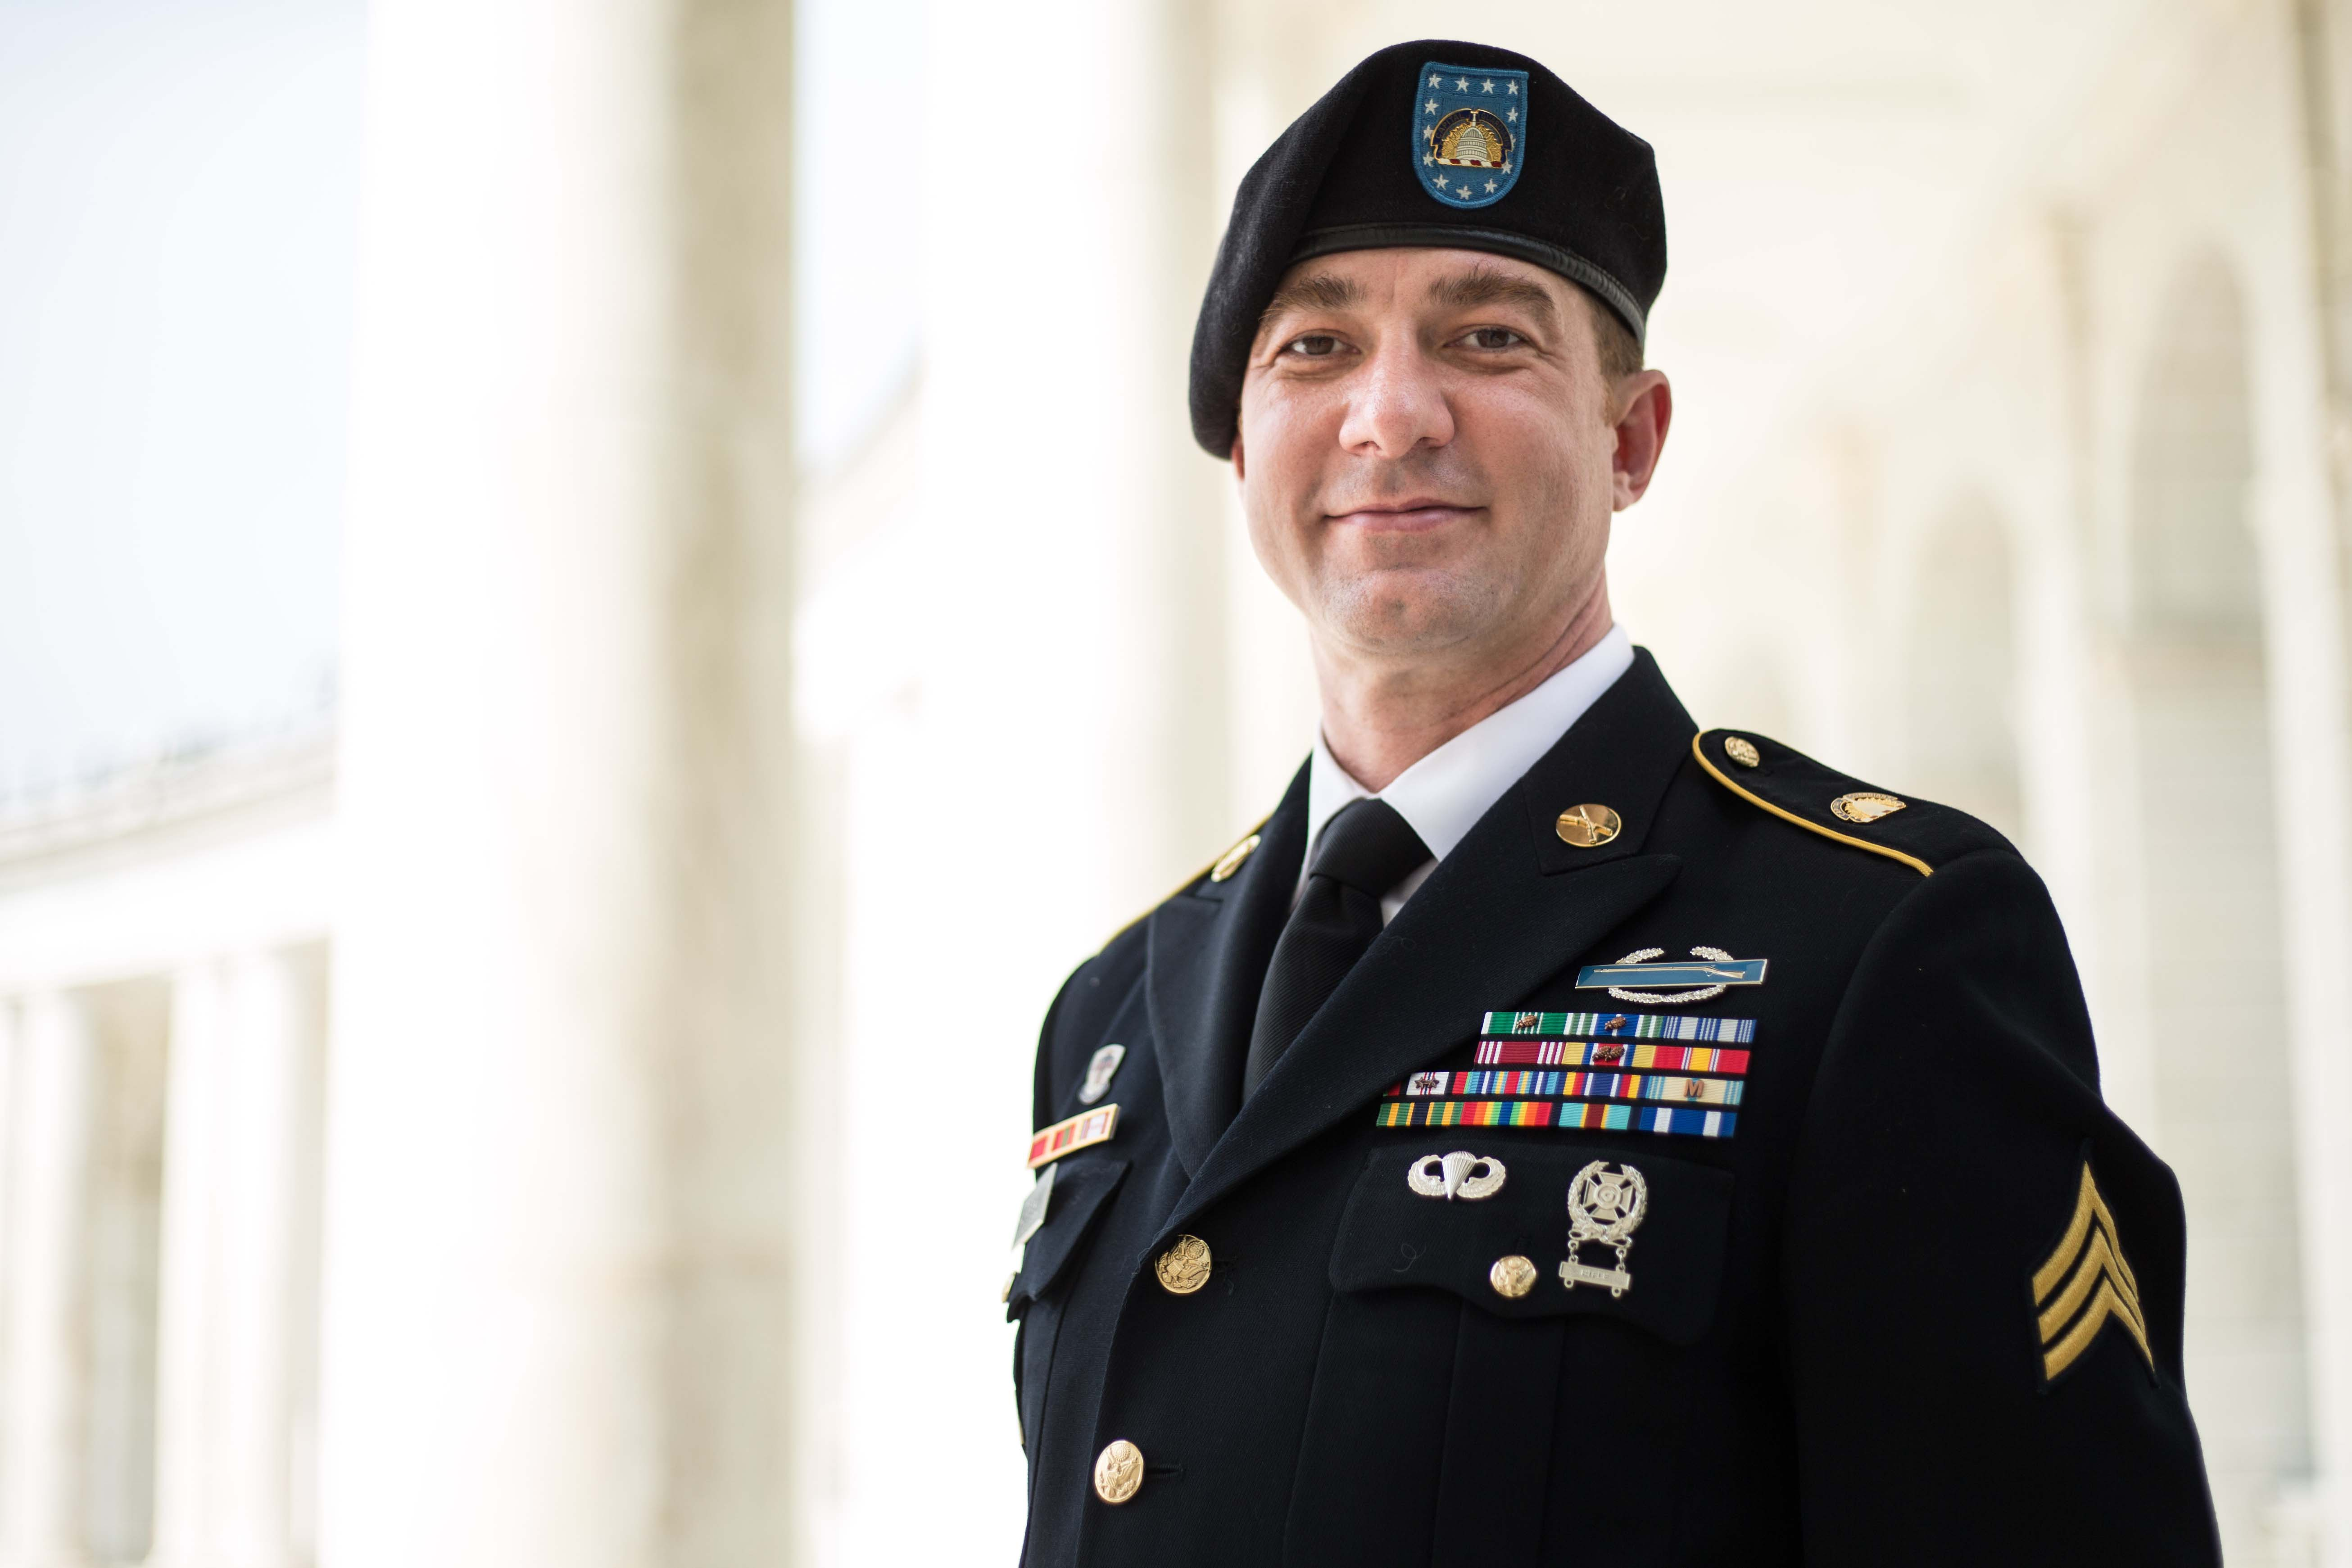 Caption: Army National Guard Sgt. Nick Harrison is one of several service members challenging the military policy that prevents HIV positive troops from deploying or becoming officers., Credit: Lambda Legal